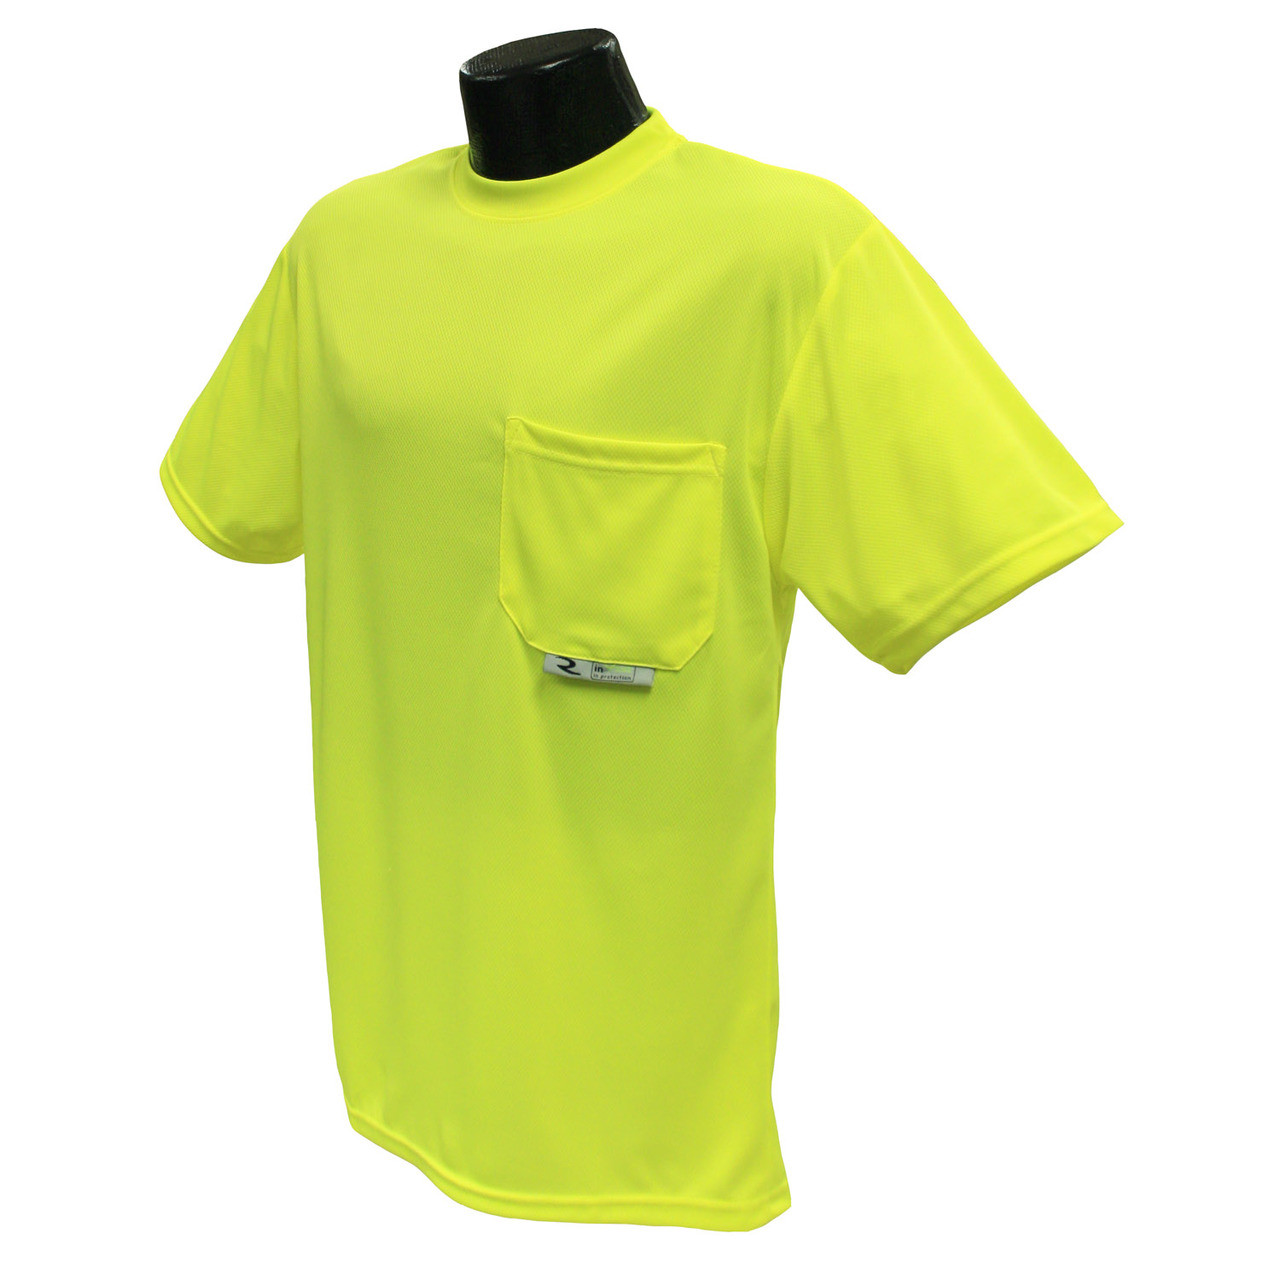 Hi-Vis Green Non-Rated Short Sleeve T-Shirt with MAX-DRI™ *Custom Printing Available*